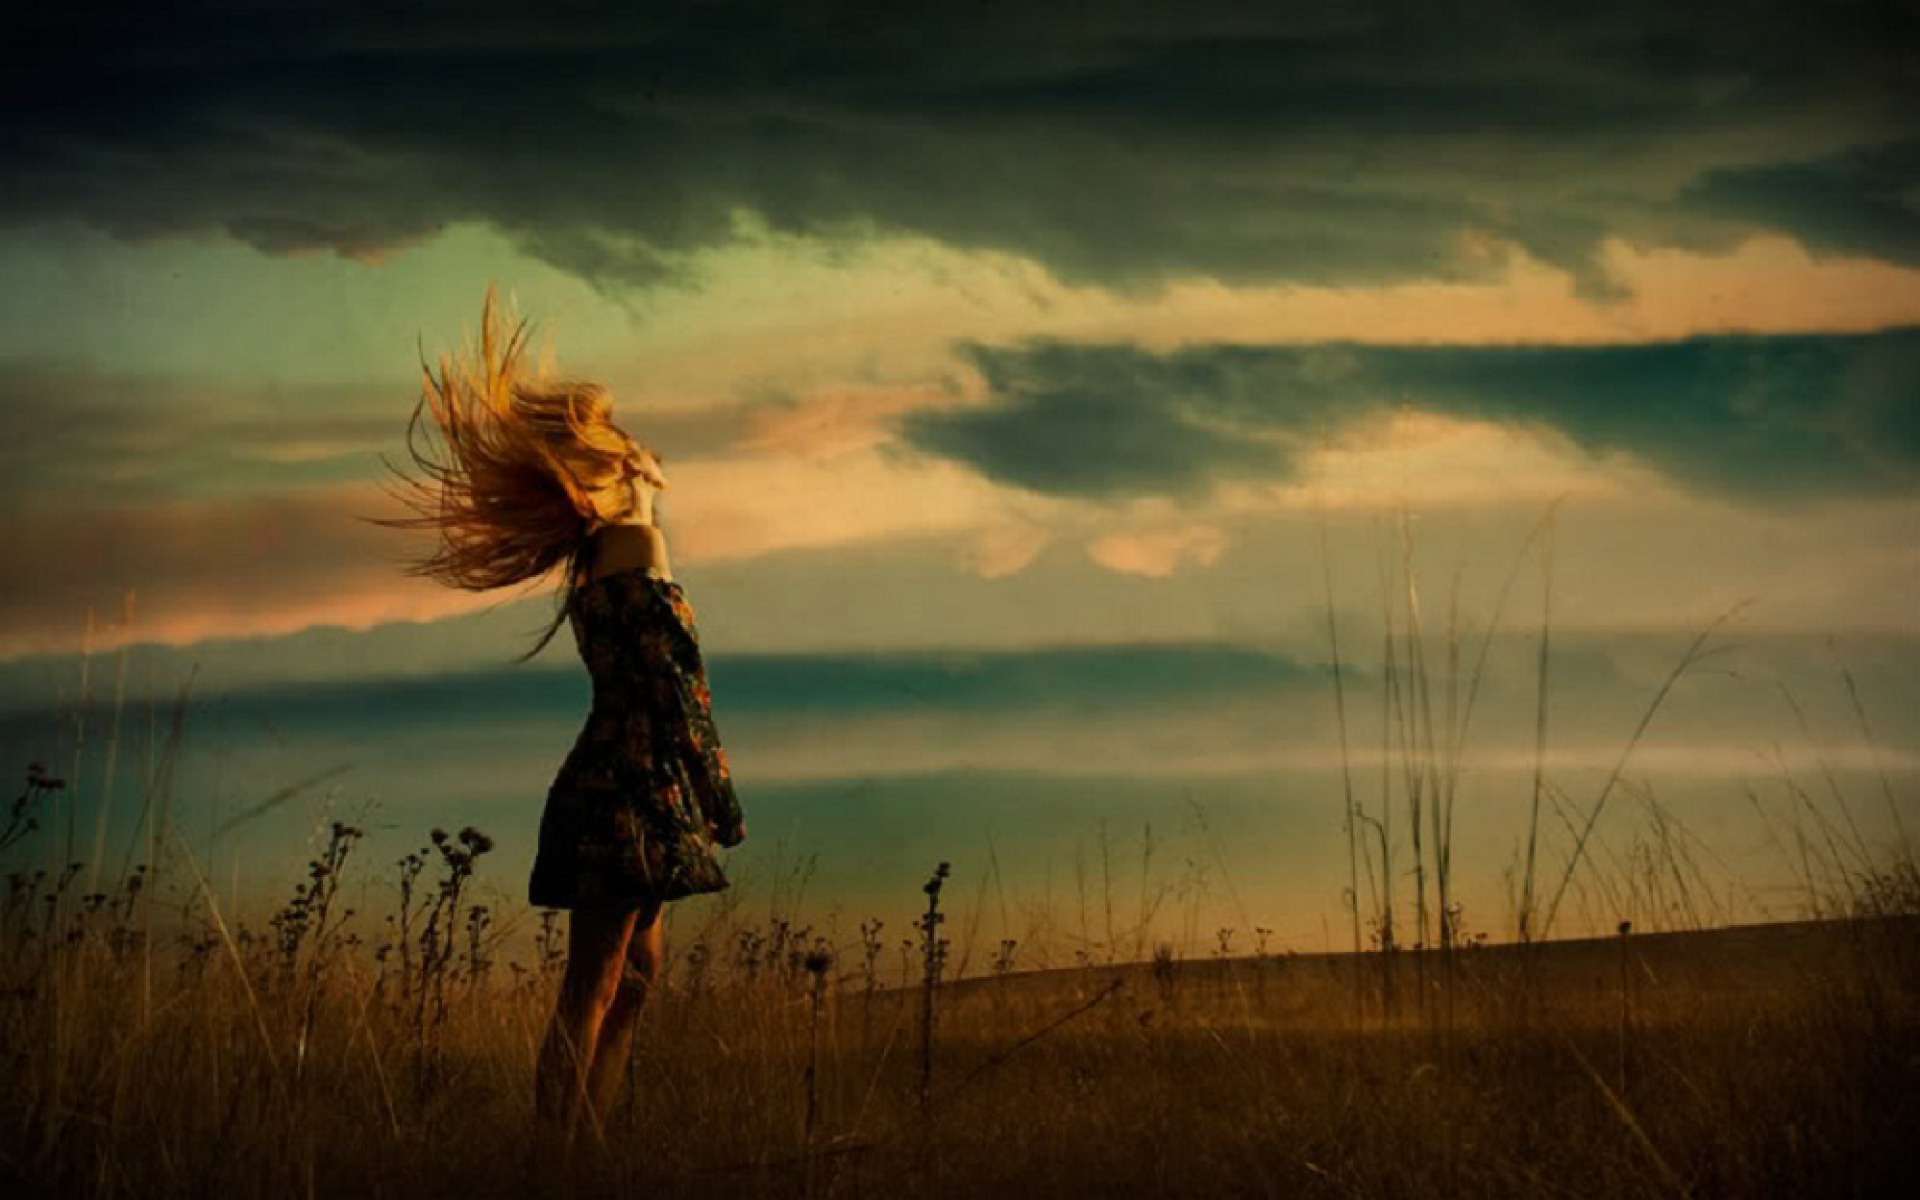 windy day woman amp field wallpapers windy day woman